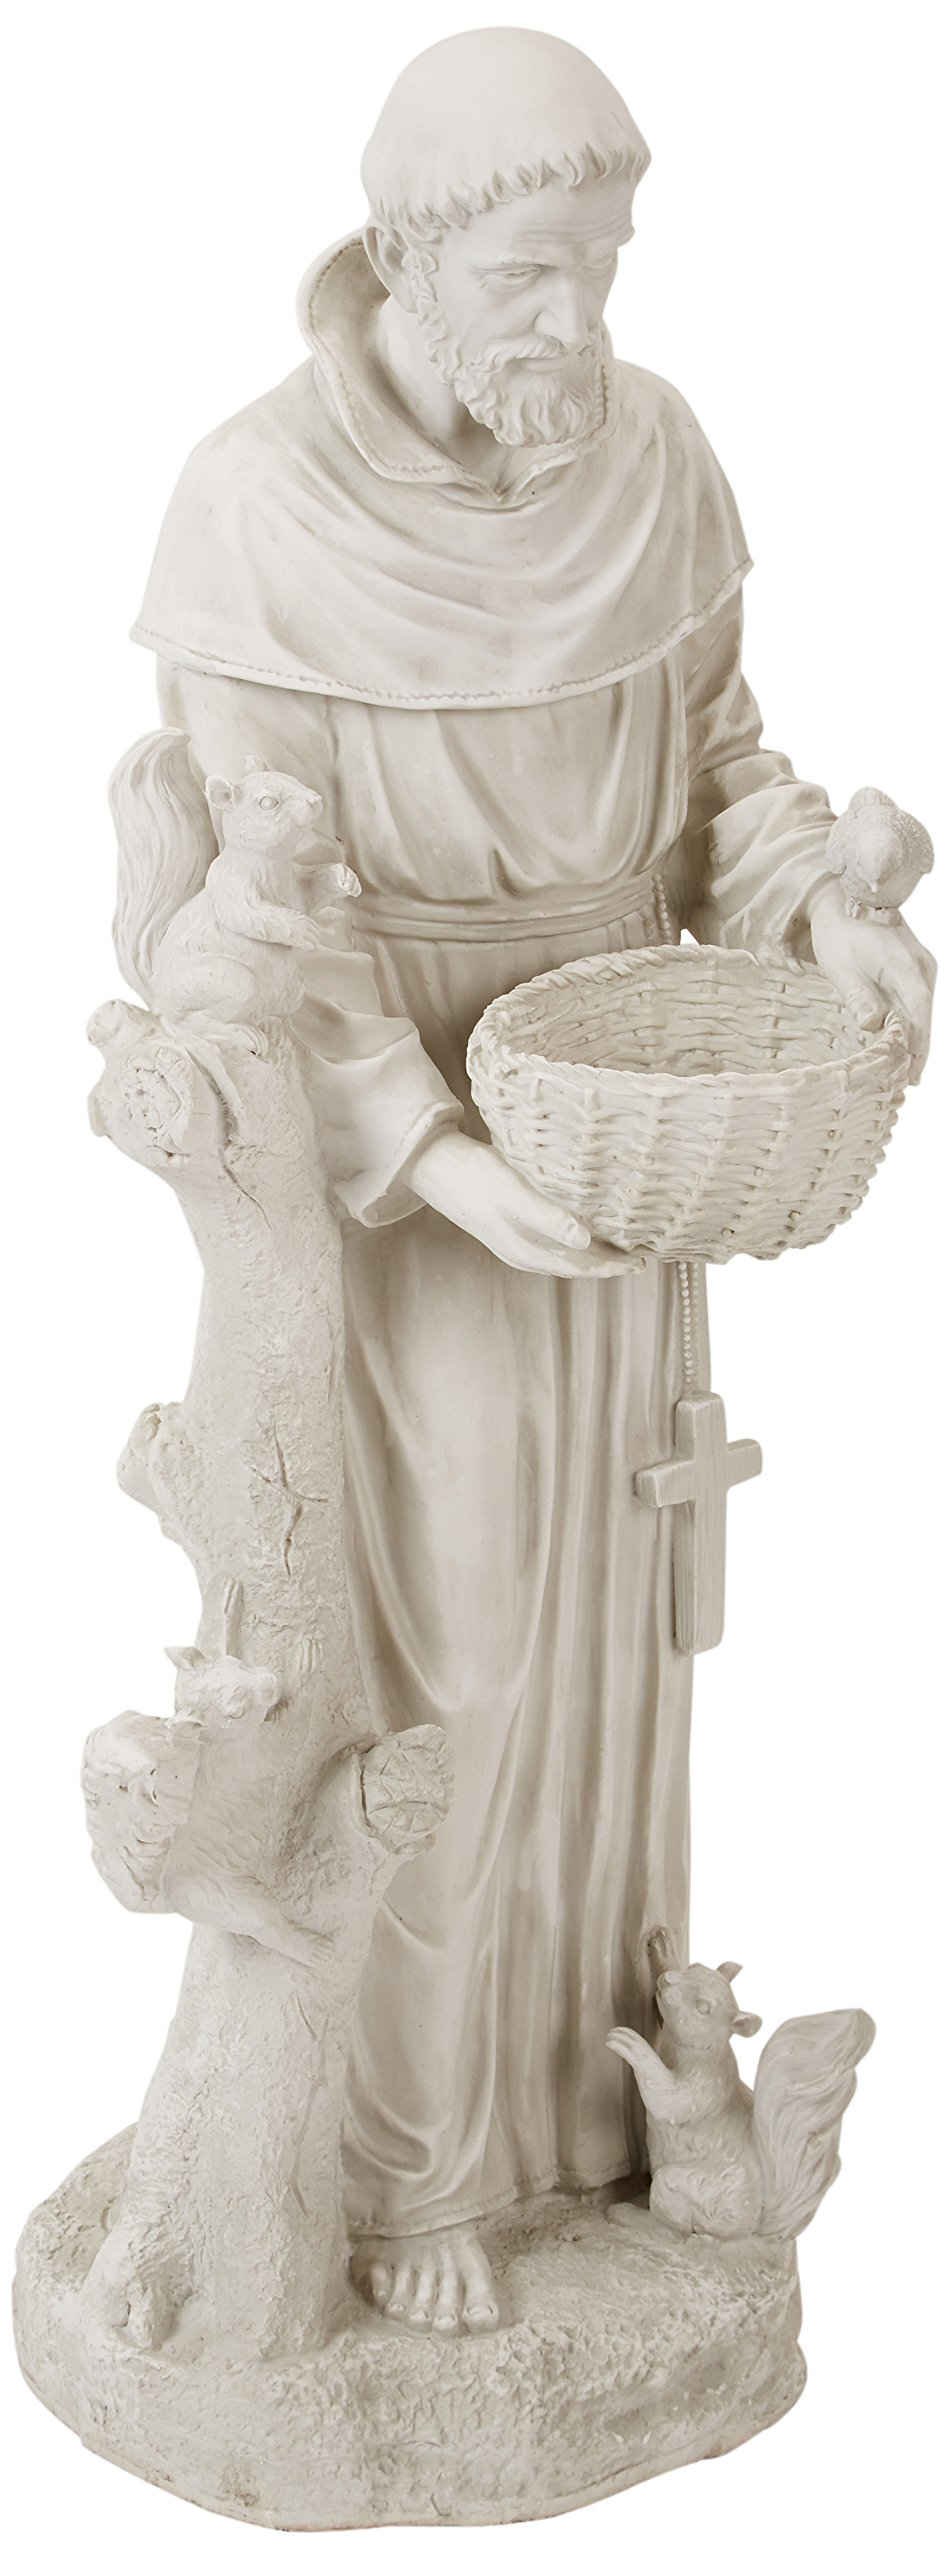 Design Toscano Nature's Nurturer: St. Francis Sculpture